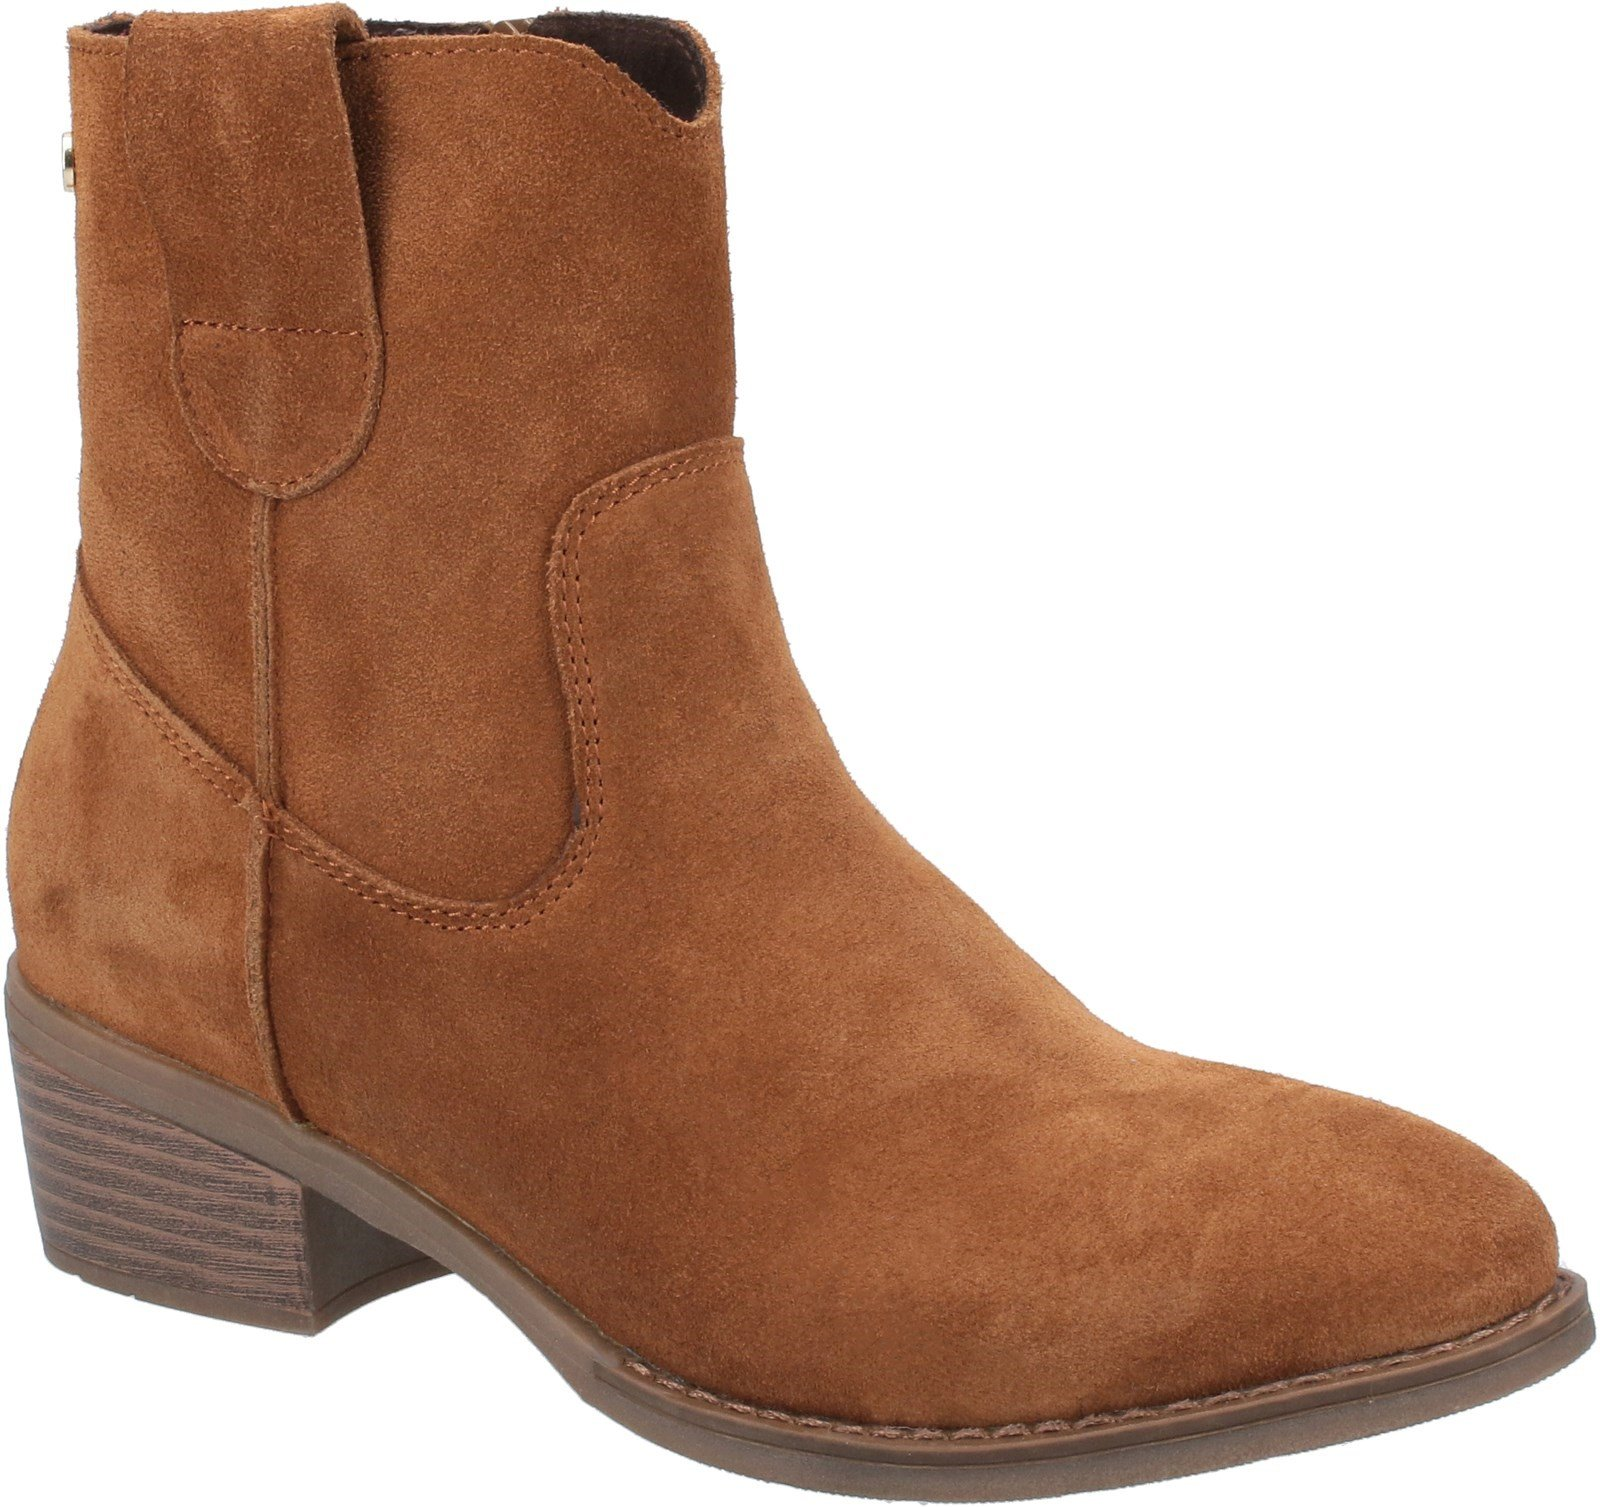 Hush Puppies Women's Iva Ladies Ankle Boots Various Colours 31187 - Tan 3